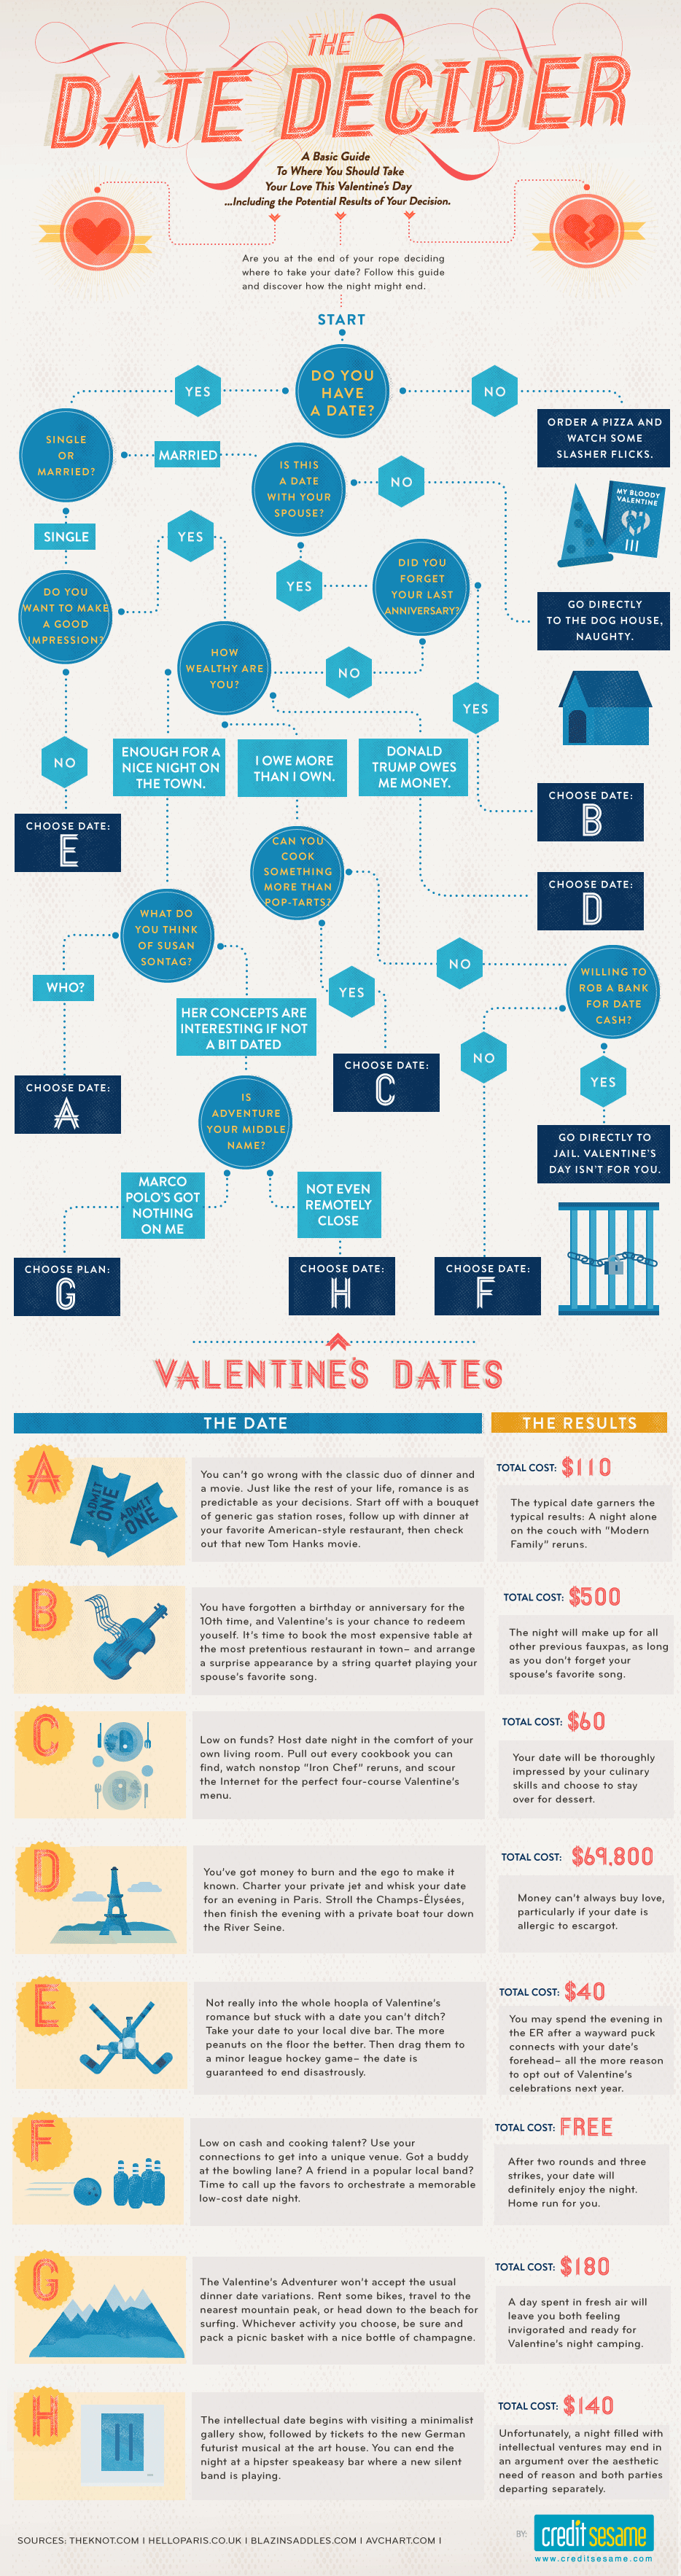 The Date Decider: A Valentine's Day Date Guide